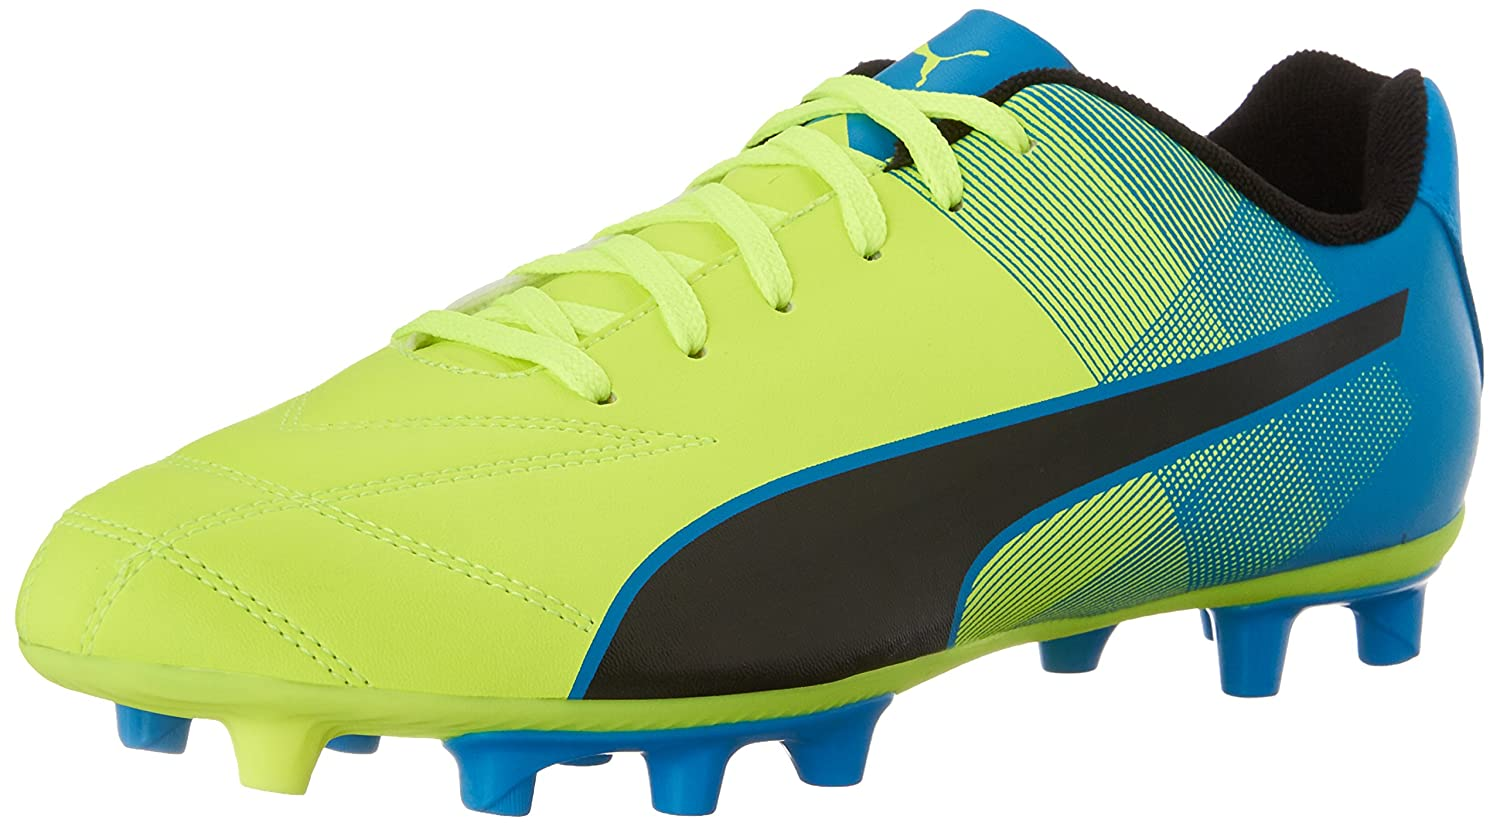 ADRENO II FIRM GROUND SOCCER SHOES